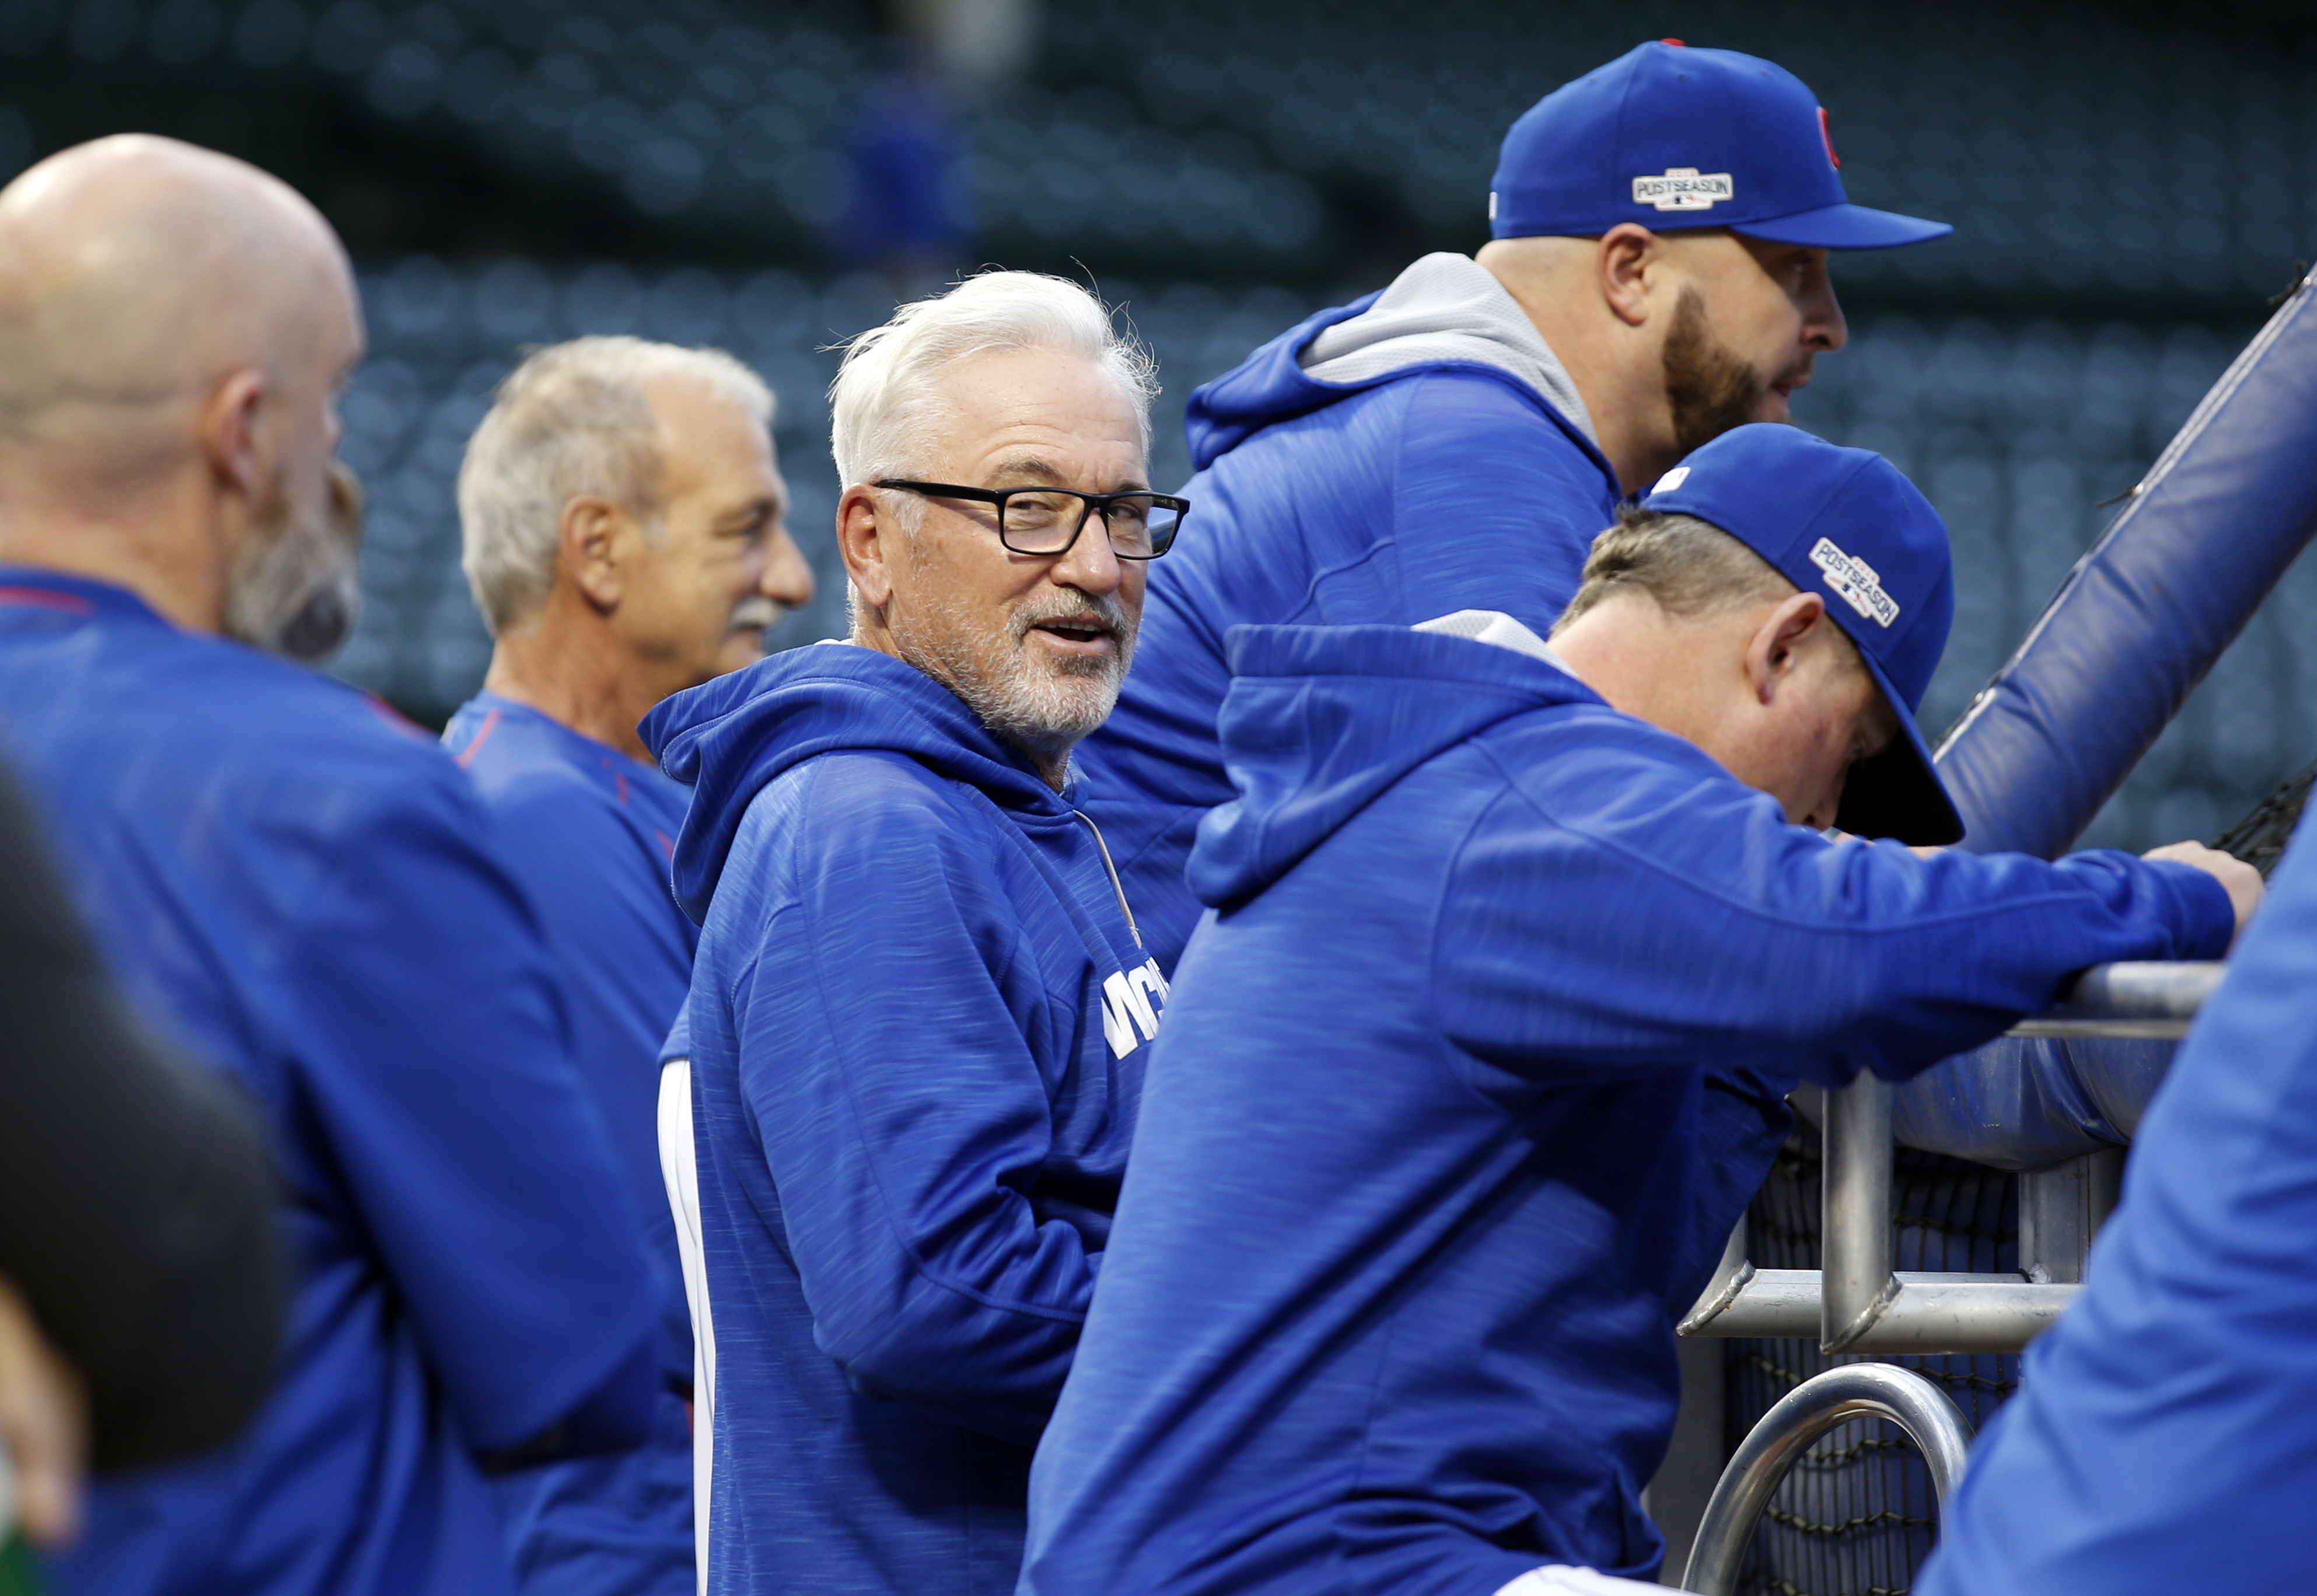 Chicago Cubs manager Joe Maddon watches as players warm up during batting practice before Game 1 of baseball's National League Division Series against the San Francisco Giants, Friday, Oct. 7, 2016, in Chicago. (AP Photo/Nam Y. Huh)